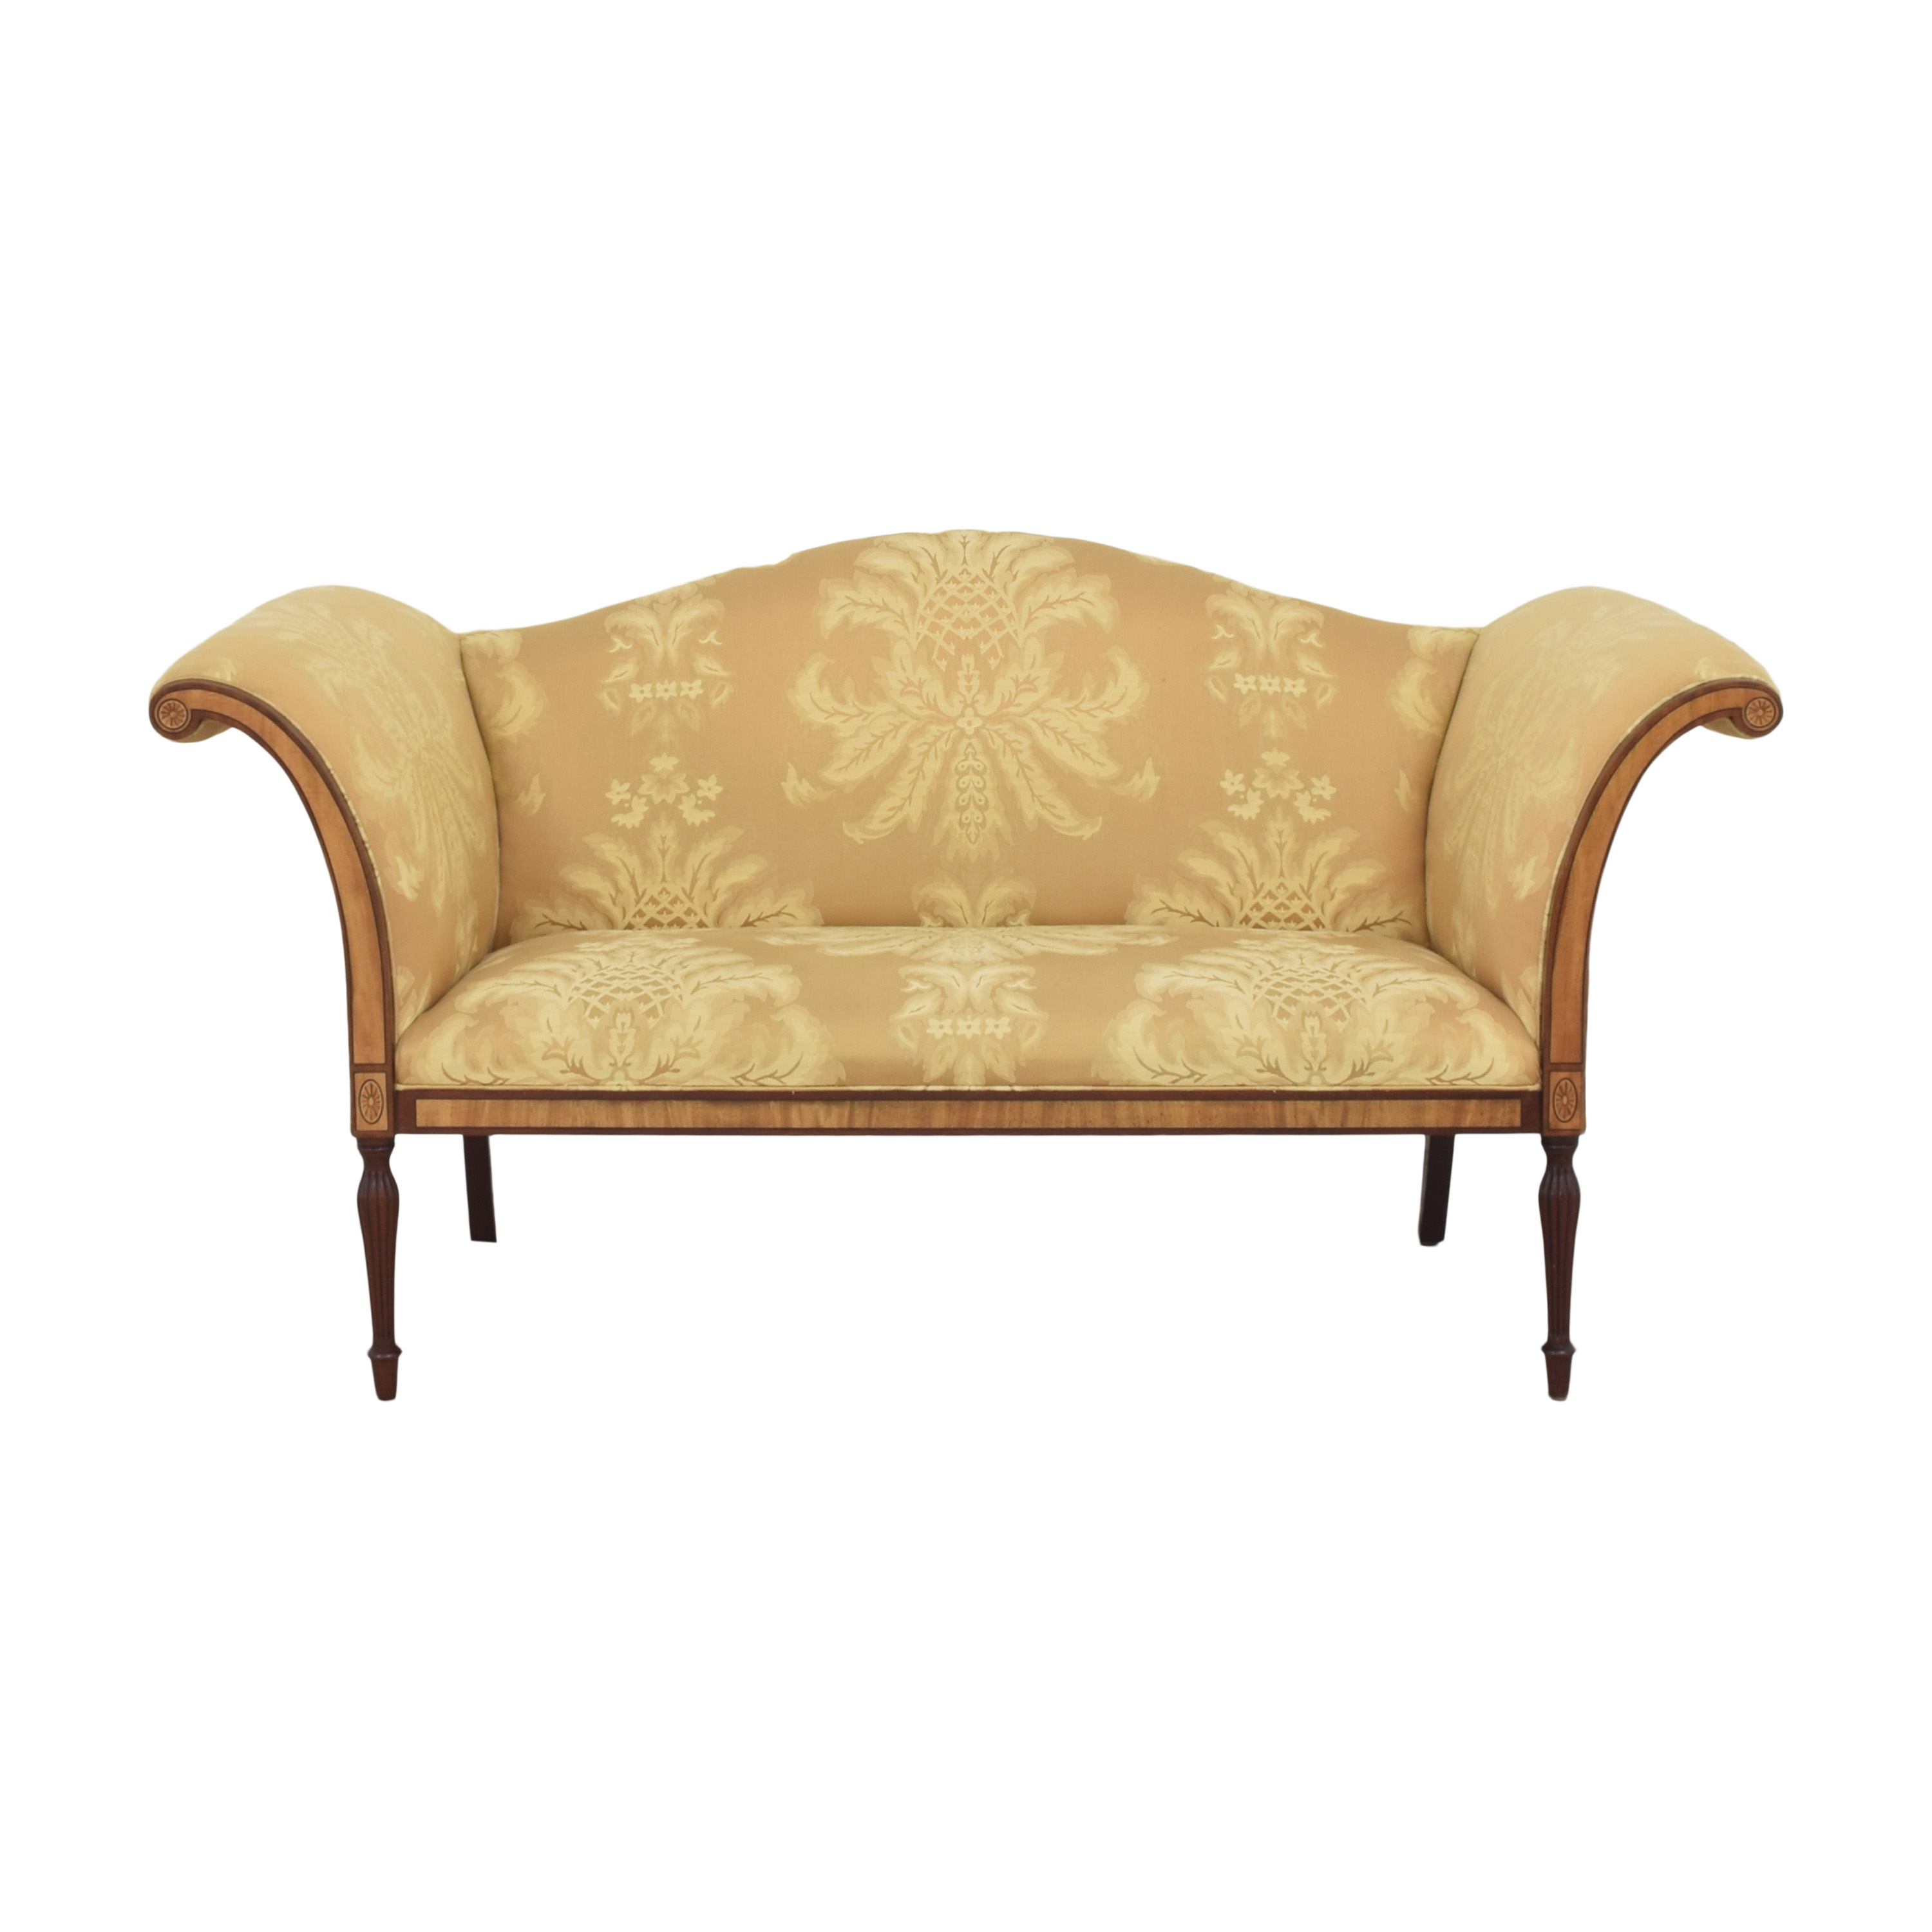 Southwood Southwood Loveseat with Pillows ct